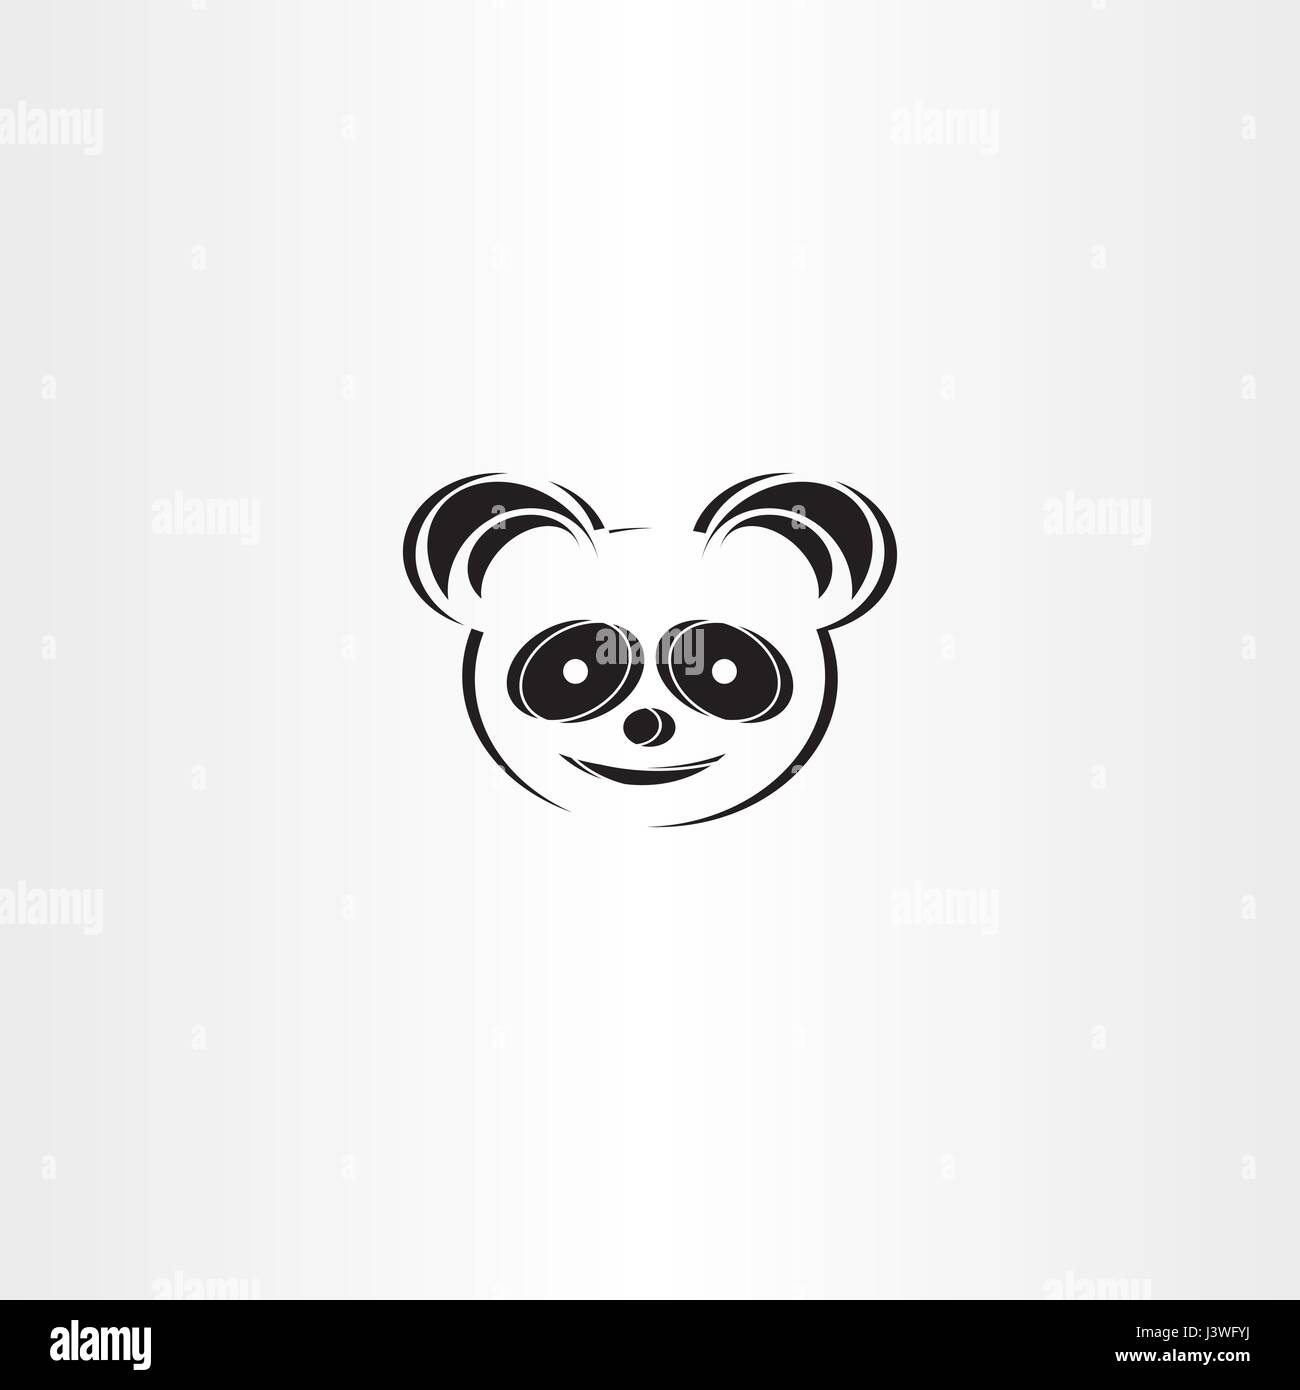 panda icon stylised vector bear symbol - Stock Vector